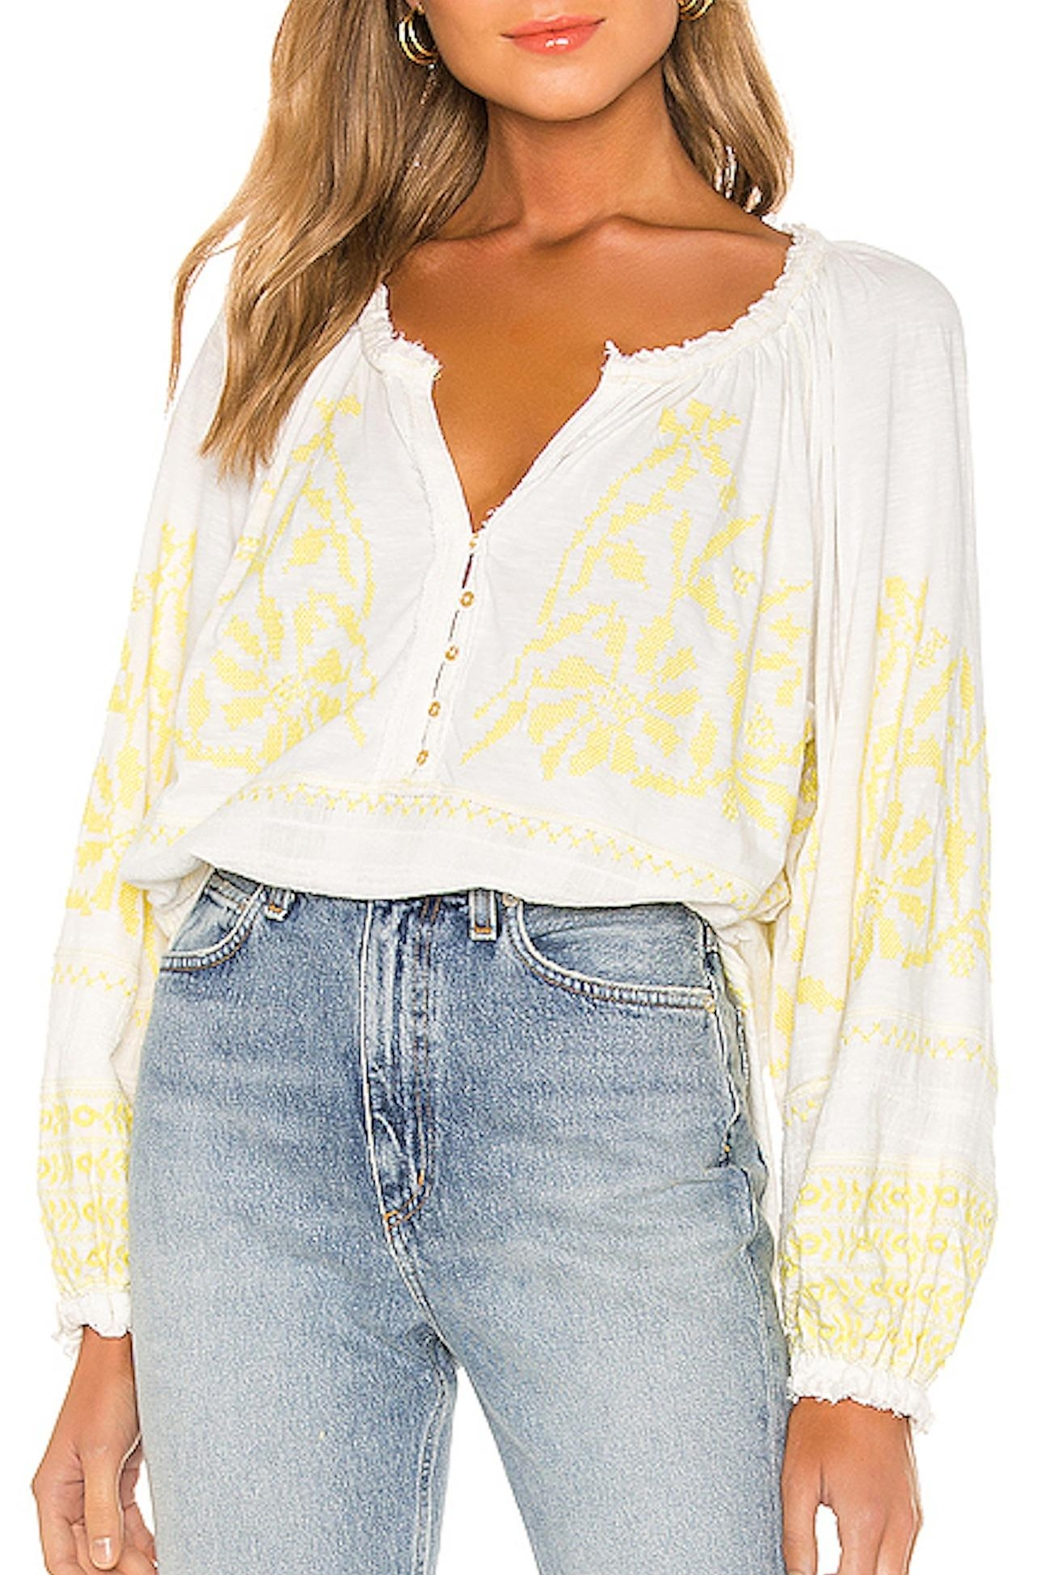 Free People Fp Persuasion Top - Front Full Image